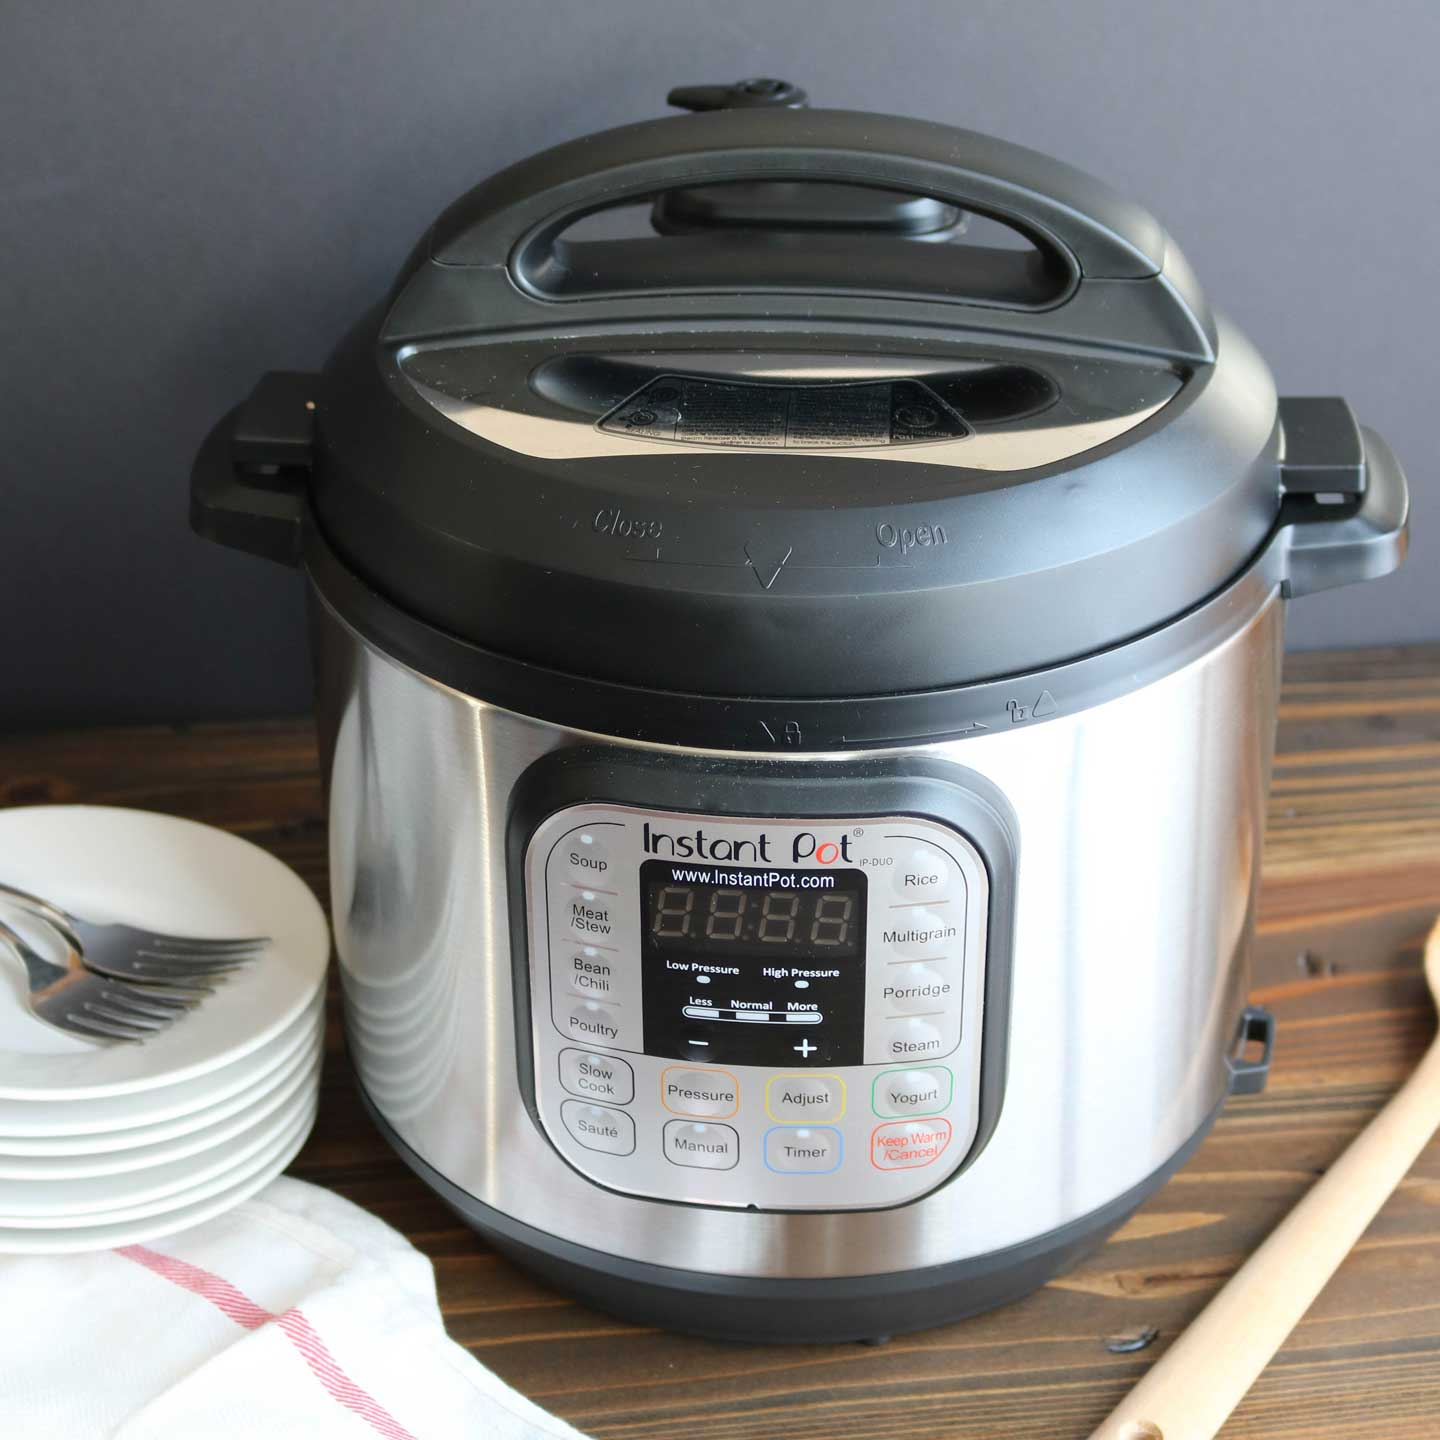 Instant Pot multi-cooker displayed near serving utensils